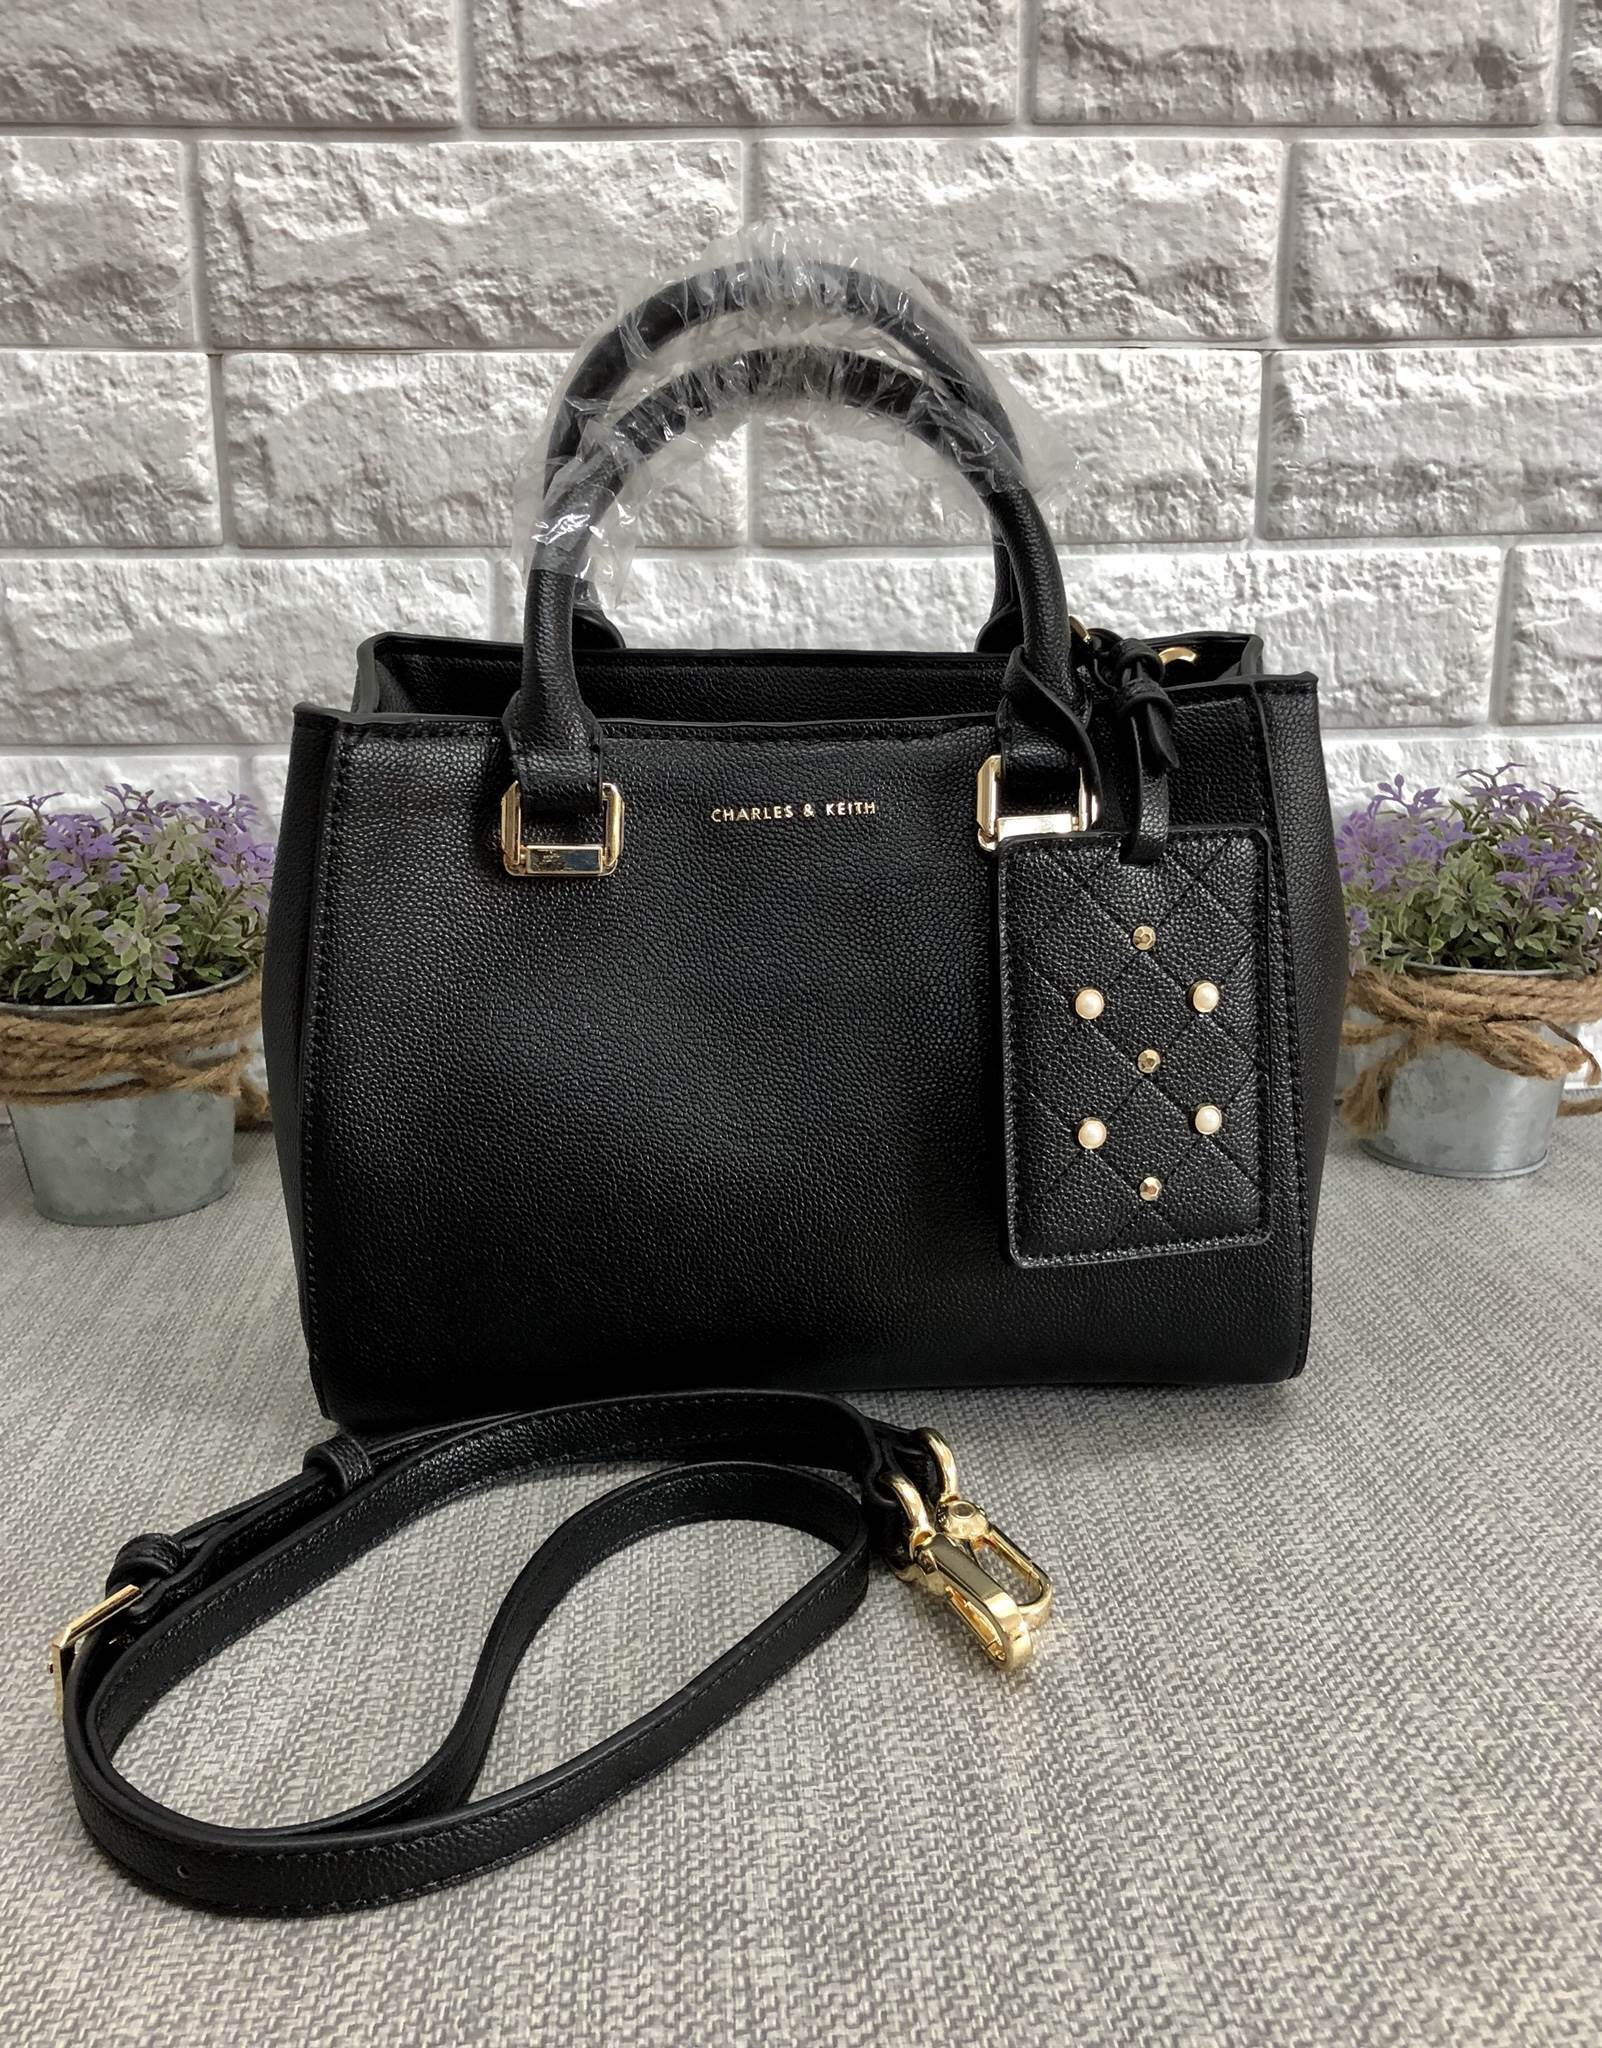 CHARLES & KEITH LARGE STRUCTURE CITY BAG *ดำ